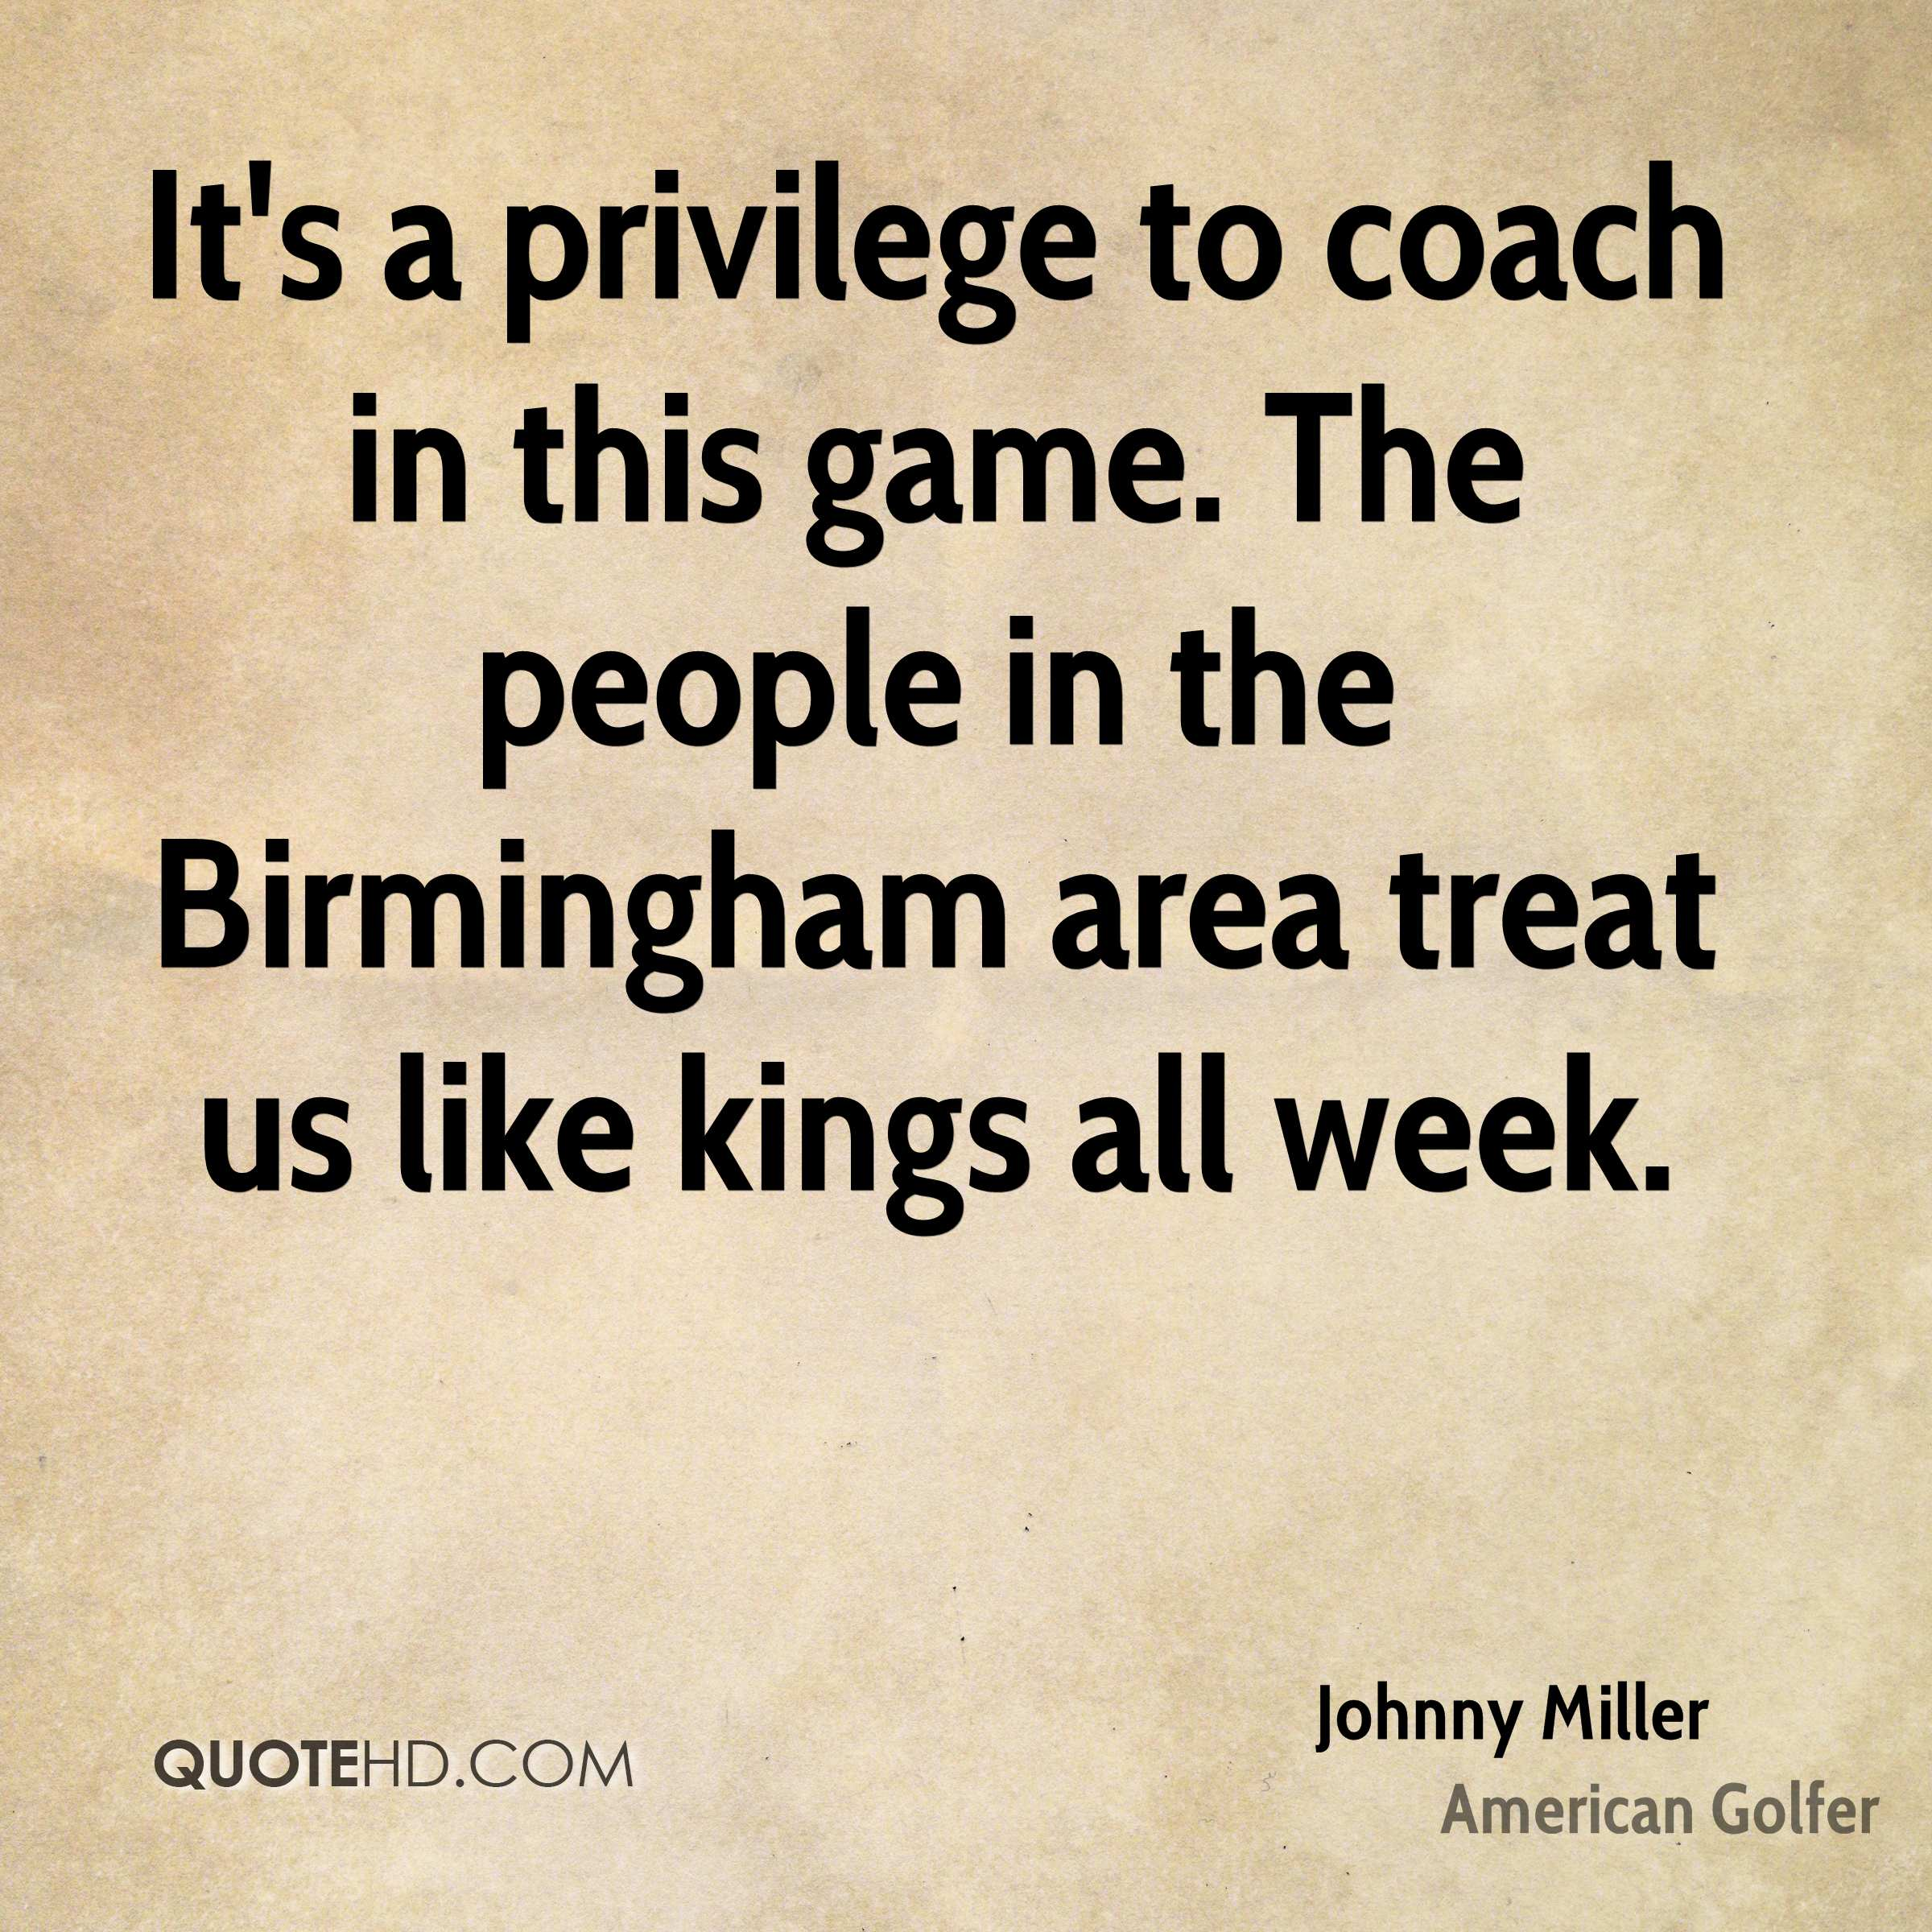 It's a privilege to coach in this game. The people in the Birmingham area treat us like kings all week.